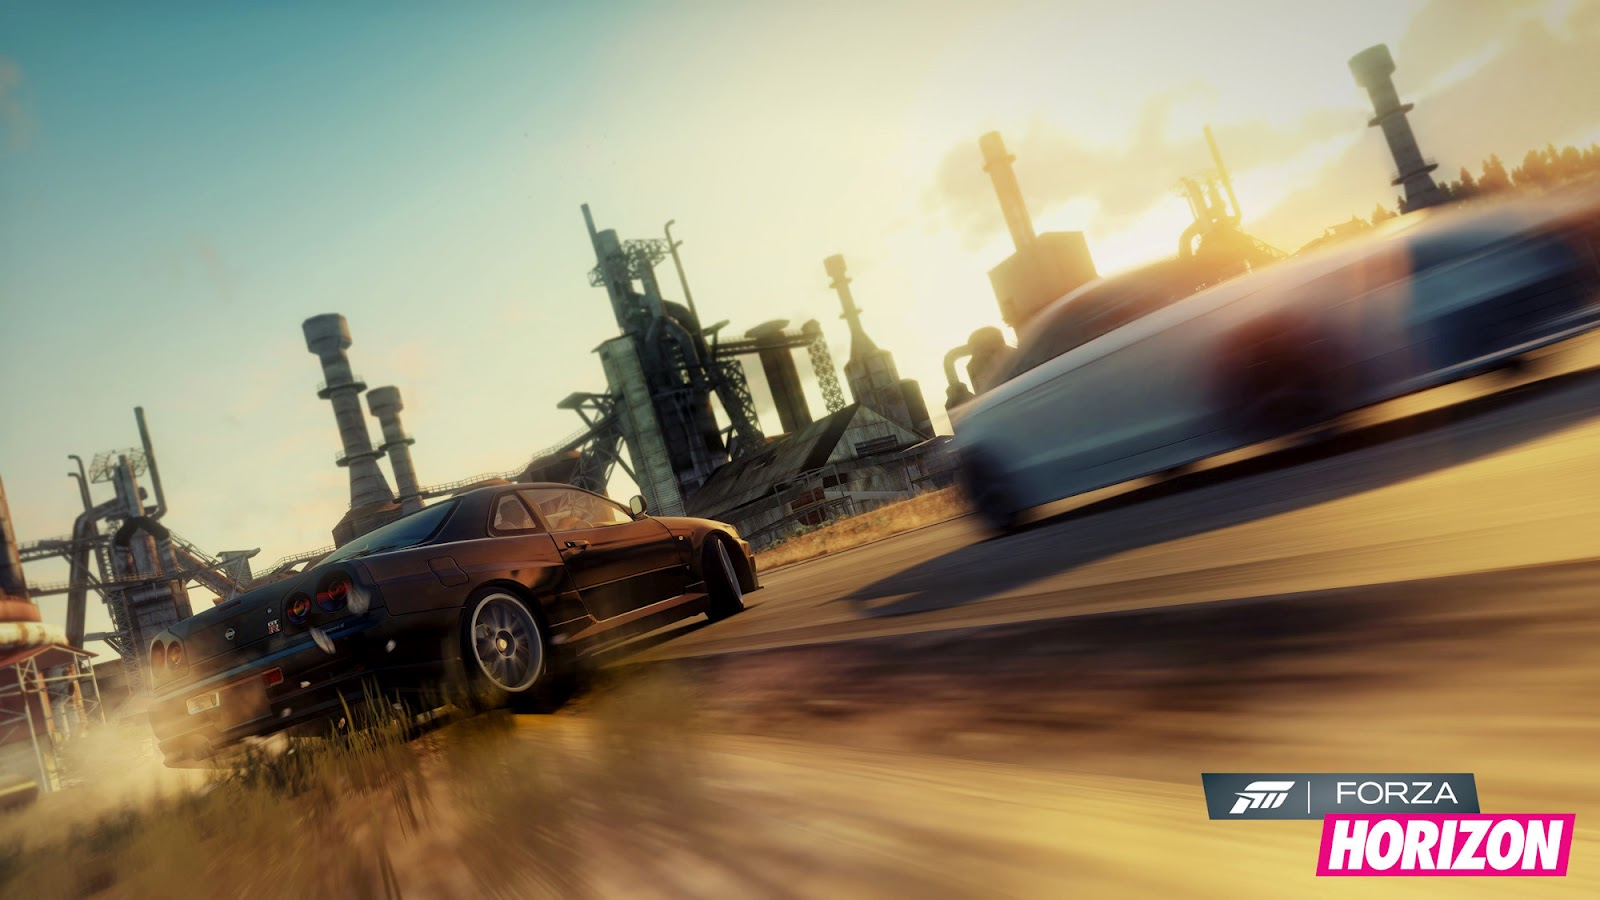 Forza Horizon HD & Widescreen Wallpaper 0.82183777237788